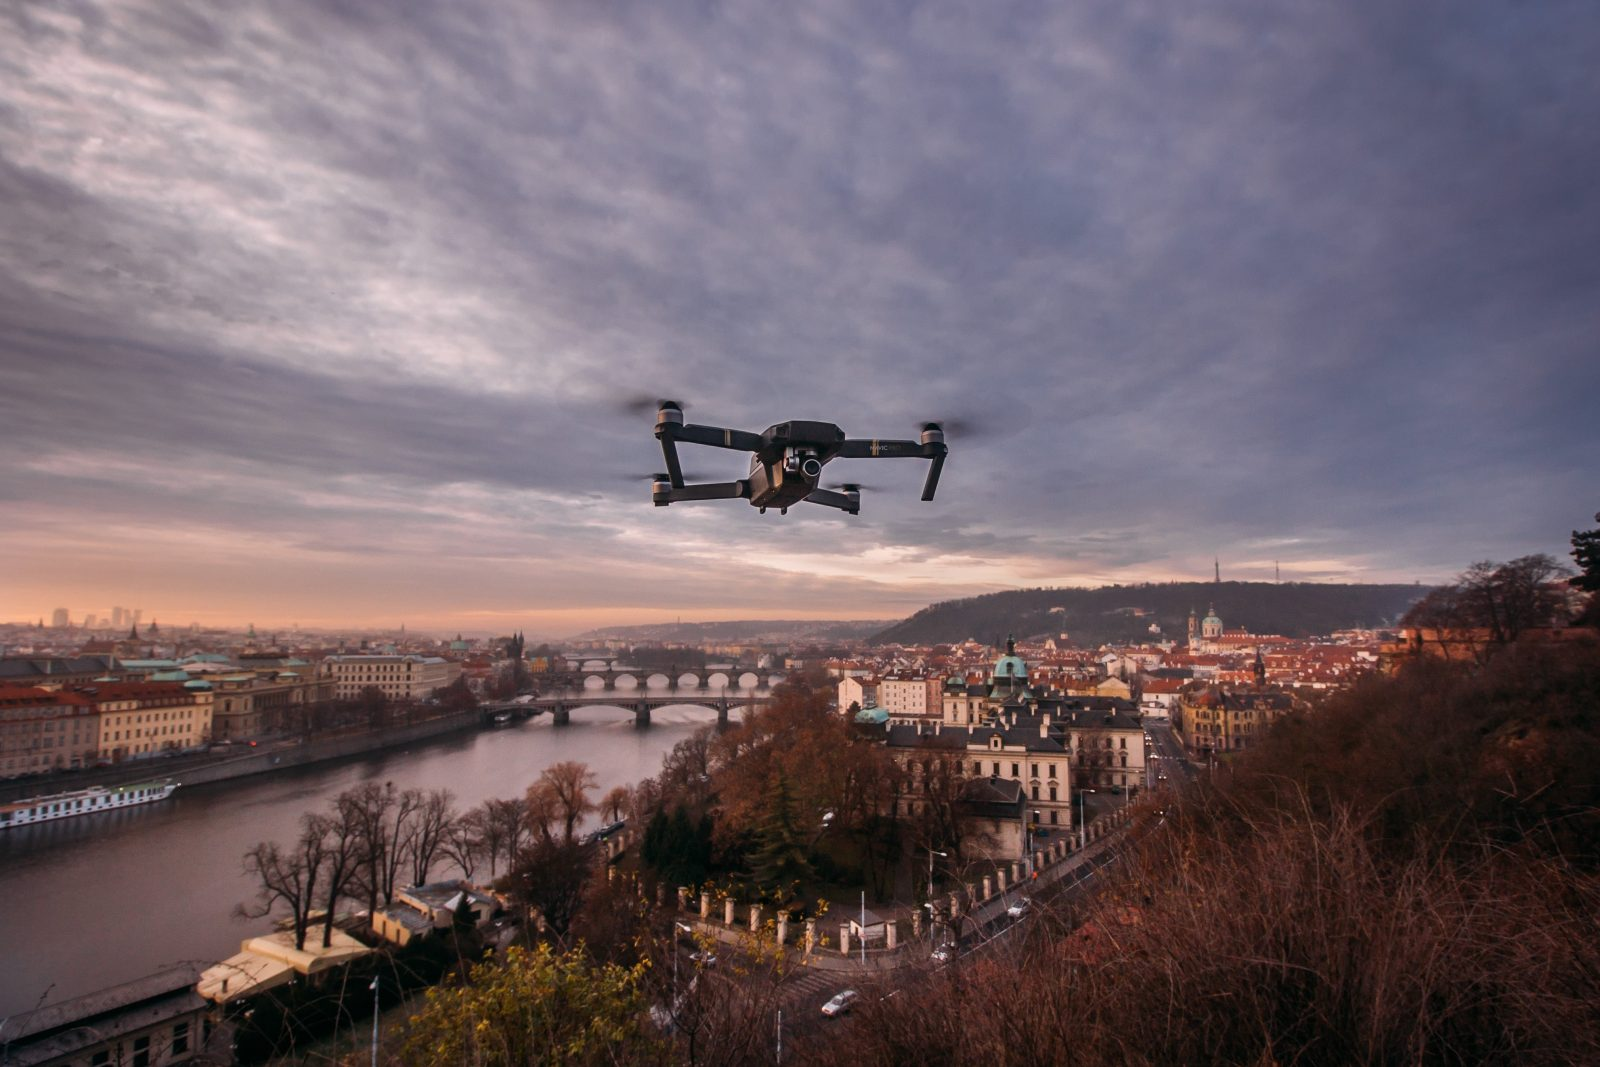 How to Safely Fly a Drone in a City